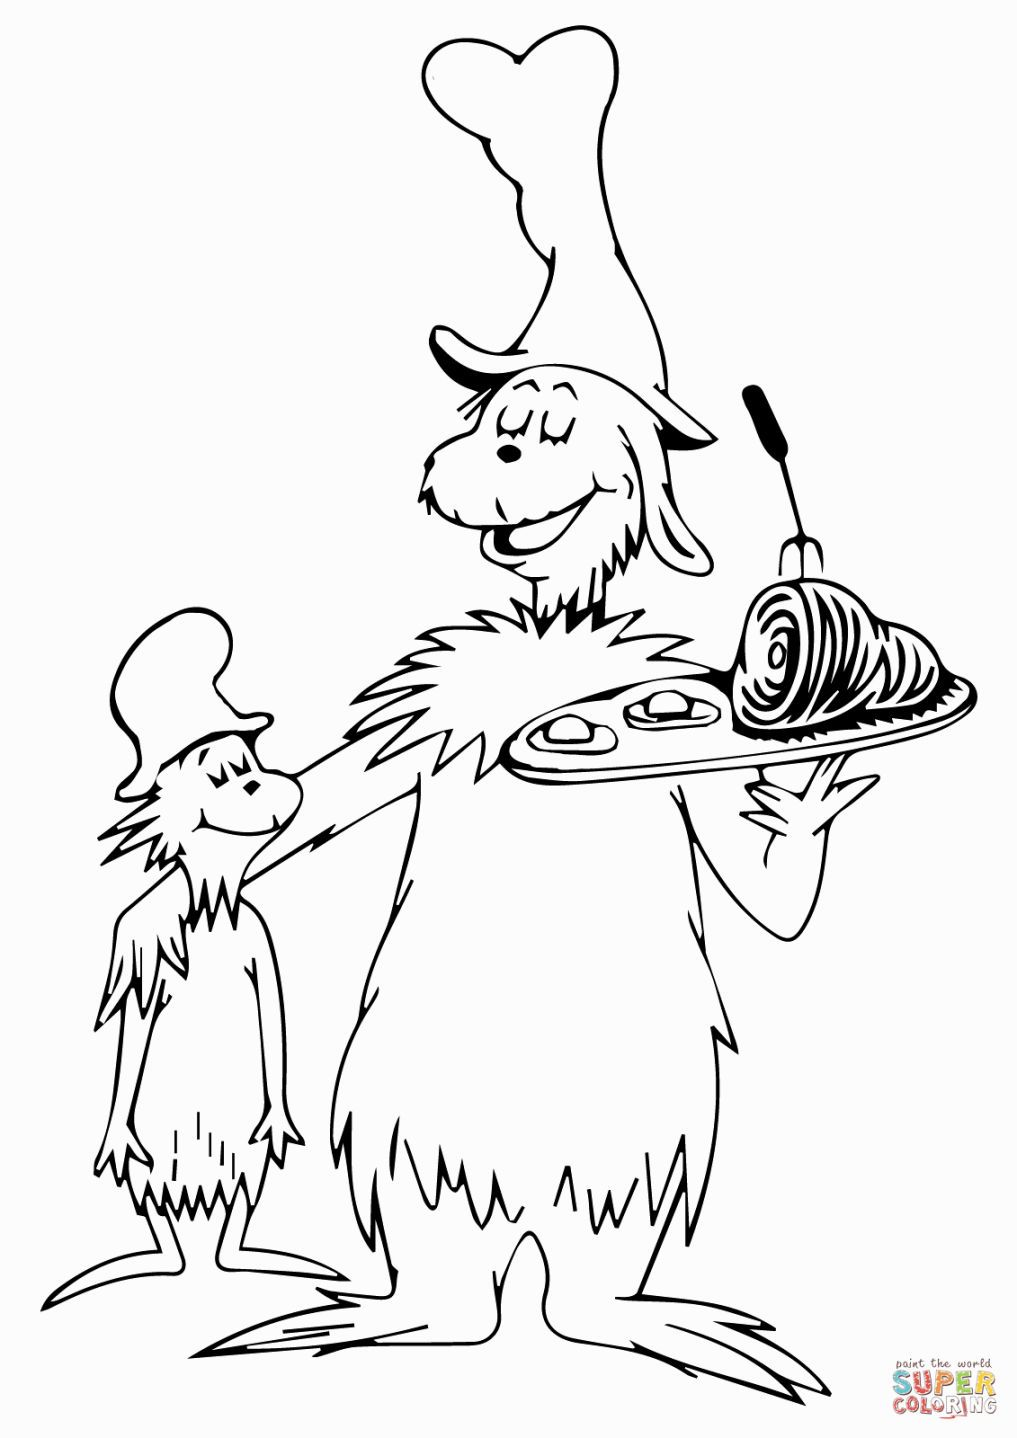 Coloring Sheets Dr Seuss | NDS 3\'s | Pinterest